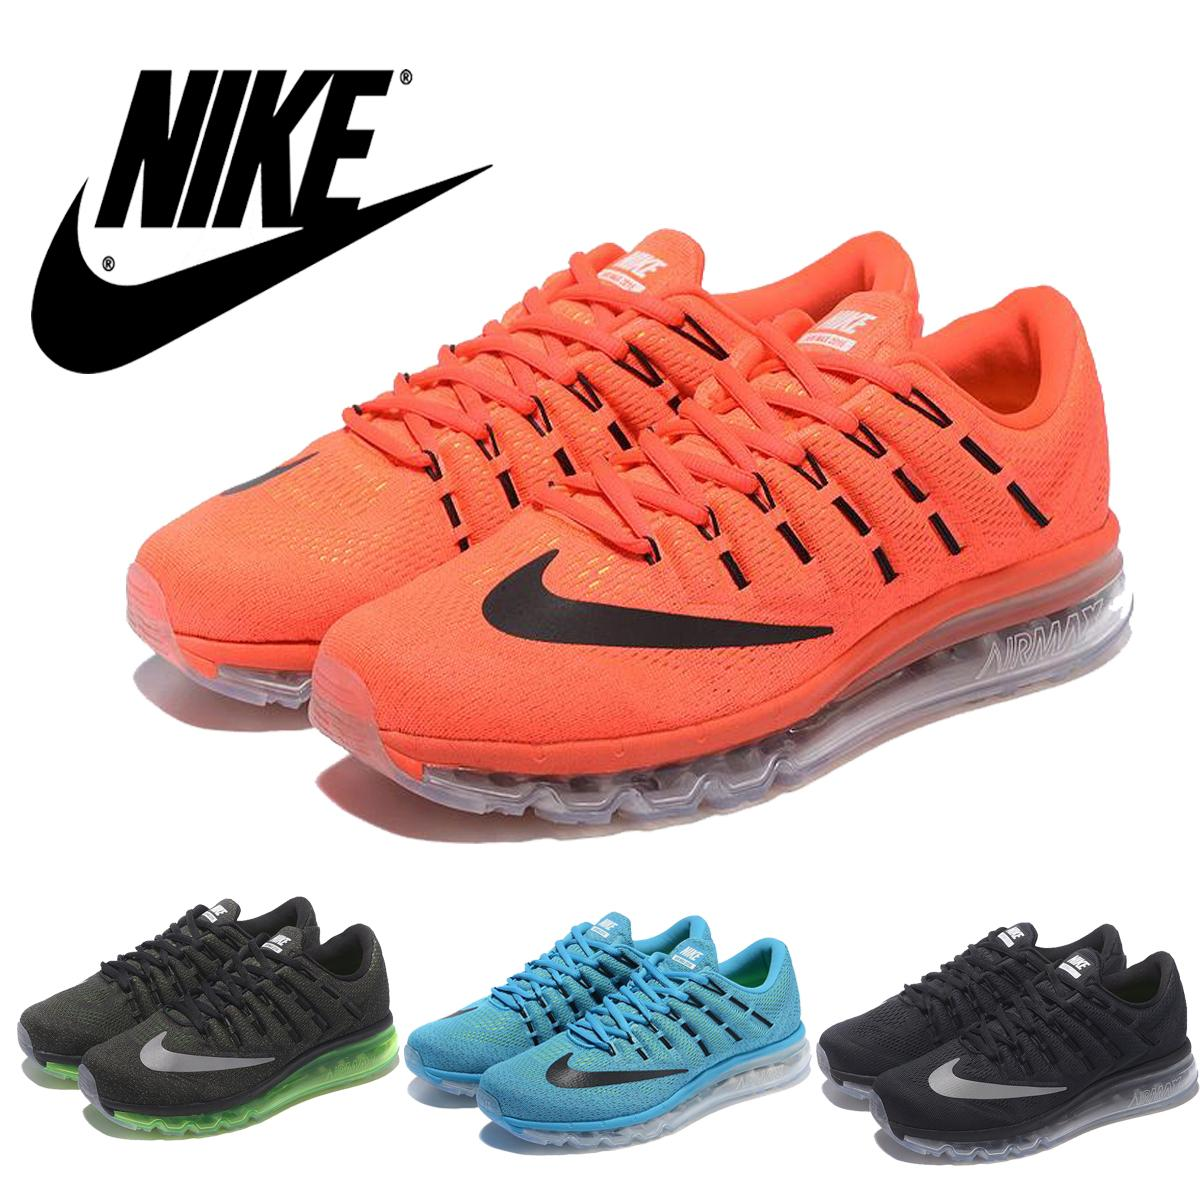 los padres de crianza brandy Burro  Nike Air Max 2016 Mesh Flyknit Mens Running Shoes Black/Dark  Grey/White,Original Nike Airmax Max2016 Maxes For Men Sports Shoe Sneakers  Best Running Shoes For Men Shoes For Sale From Bestsportcentre, $103.63|  DHgate.Com